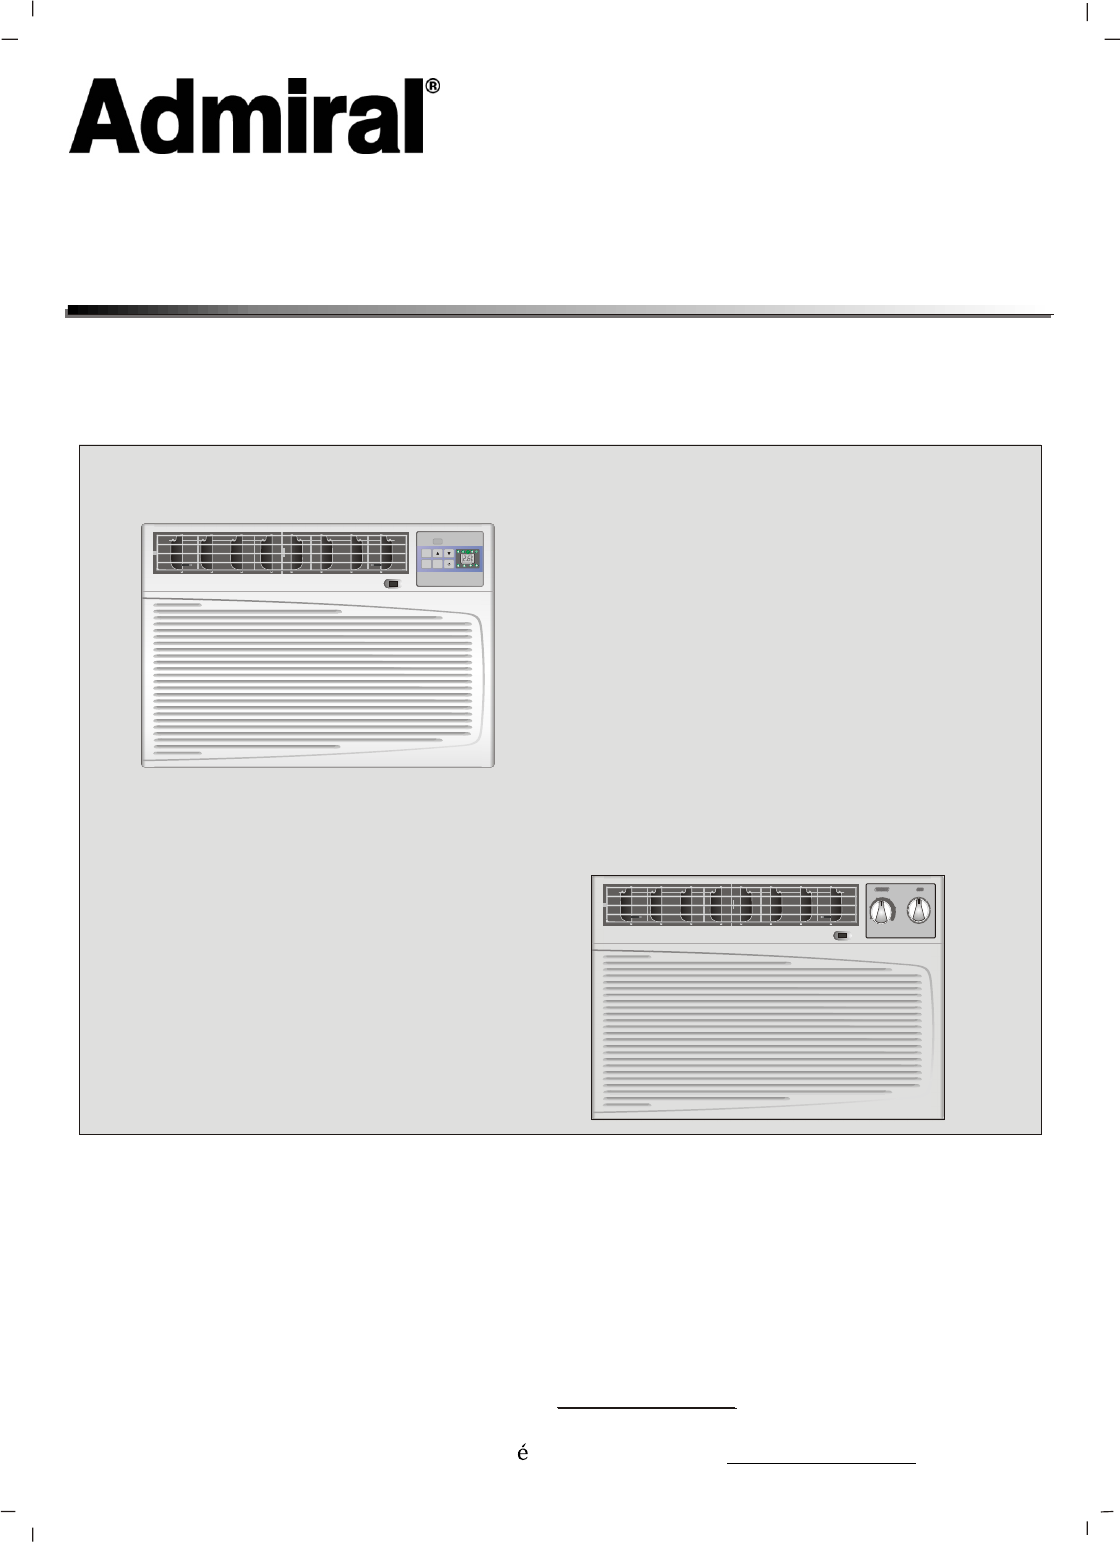 admiral air conditioner aaw 18cr3fhu user guide manualsonline com rh homeappliance manualsonline com Admiral Heating and Air Conditioning Admiral Window Air Conditioning Unit